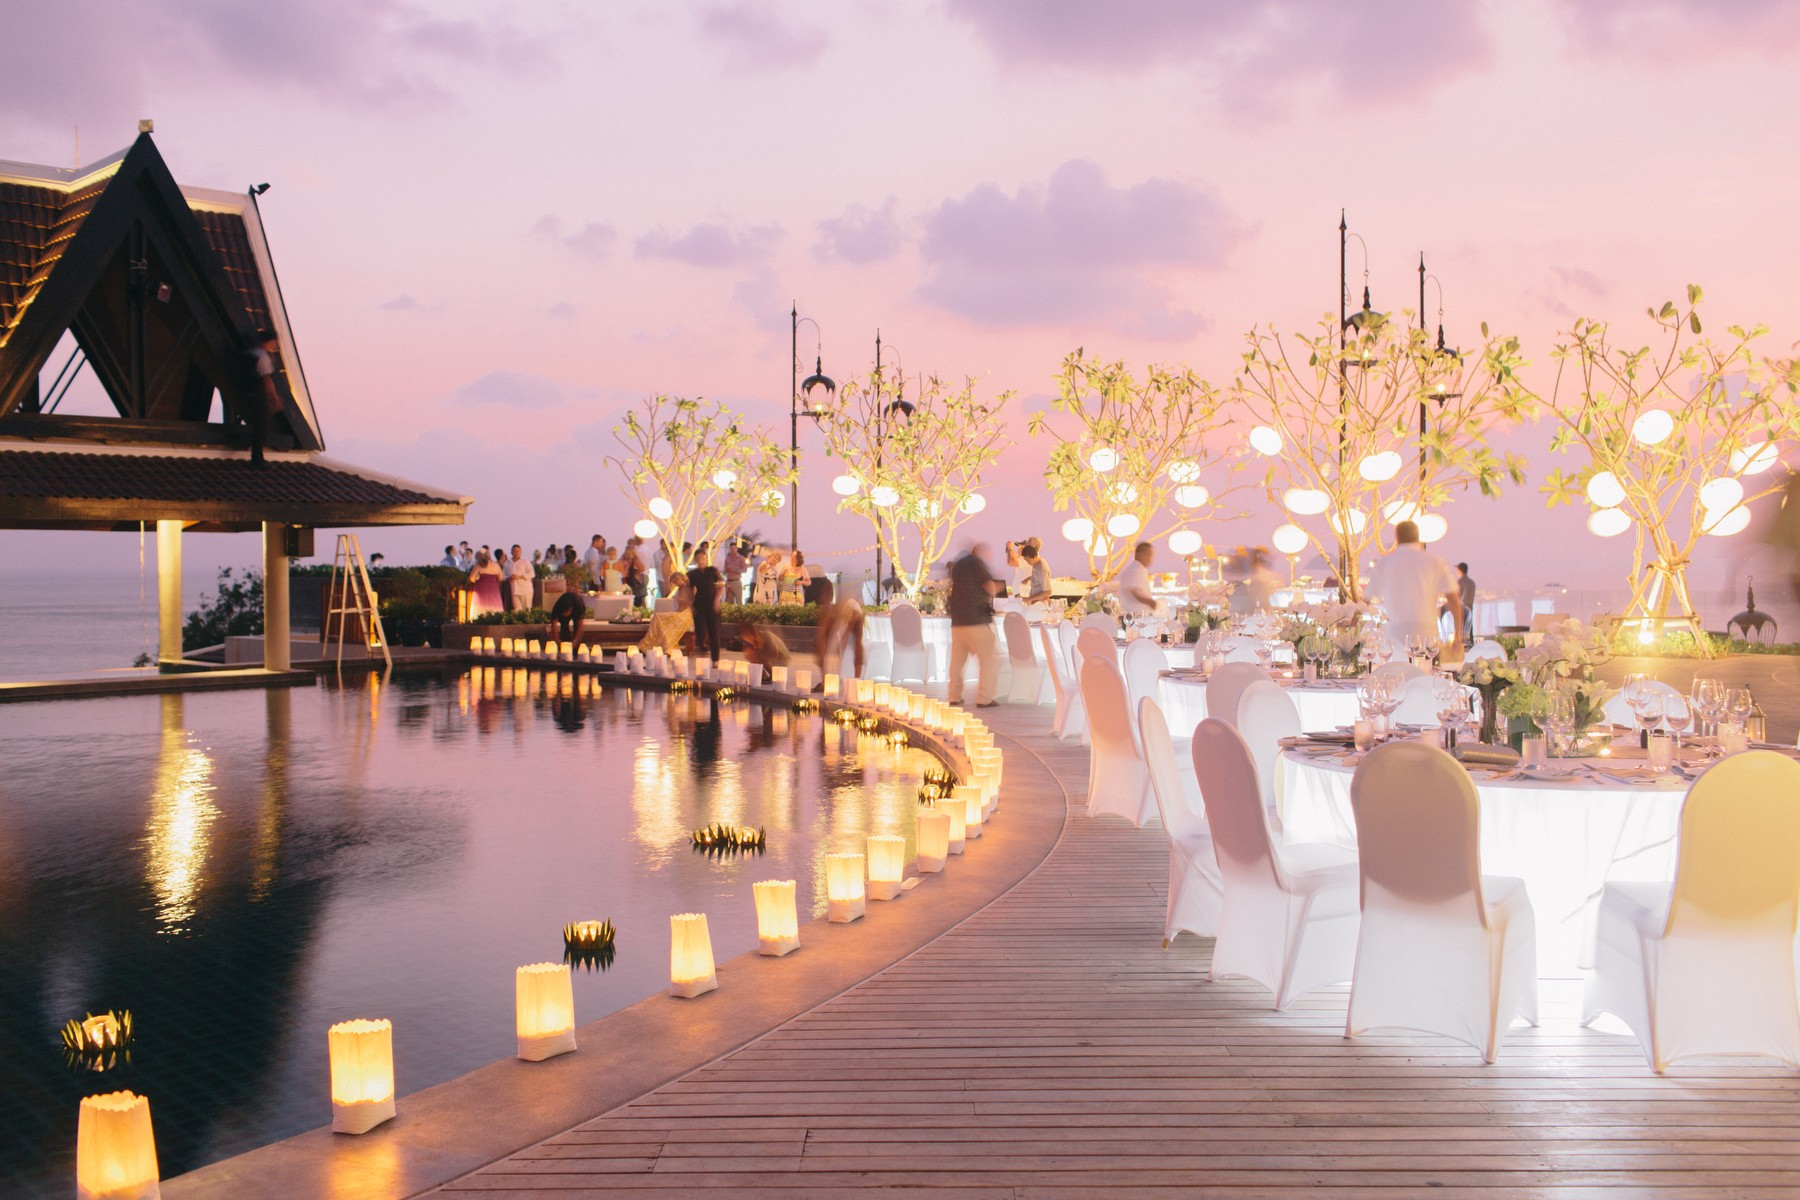 Koh samui wedding venues resort koh samui villa wedding for Best wedding venues in the us